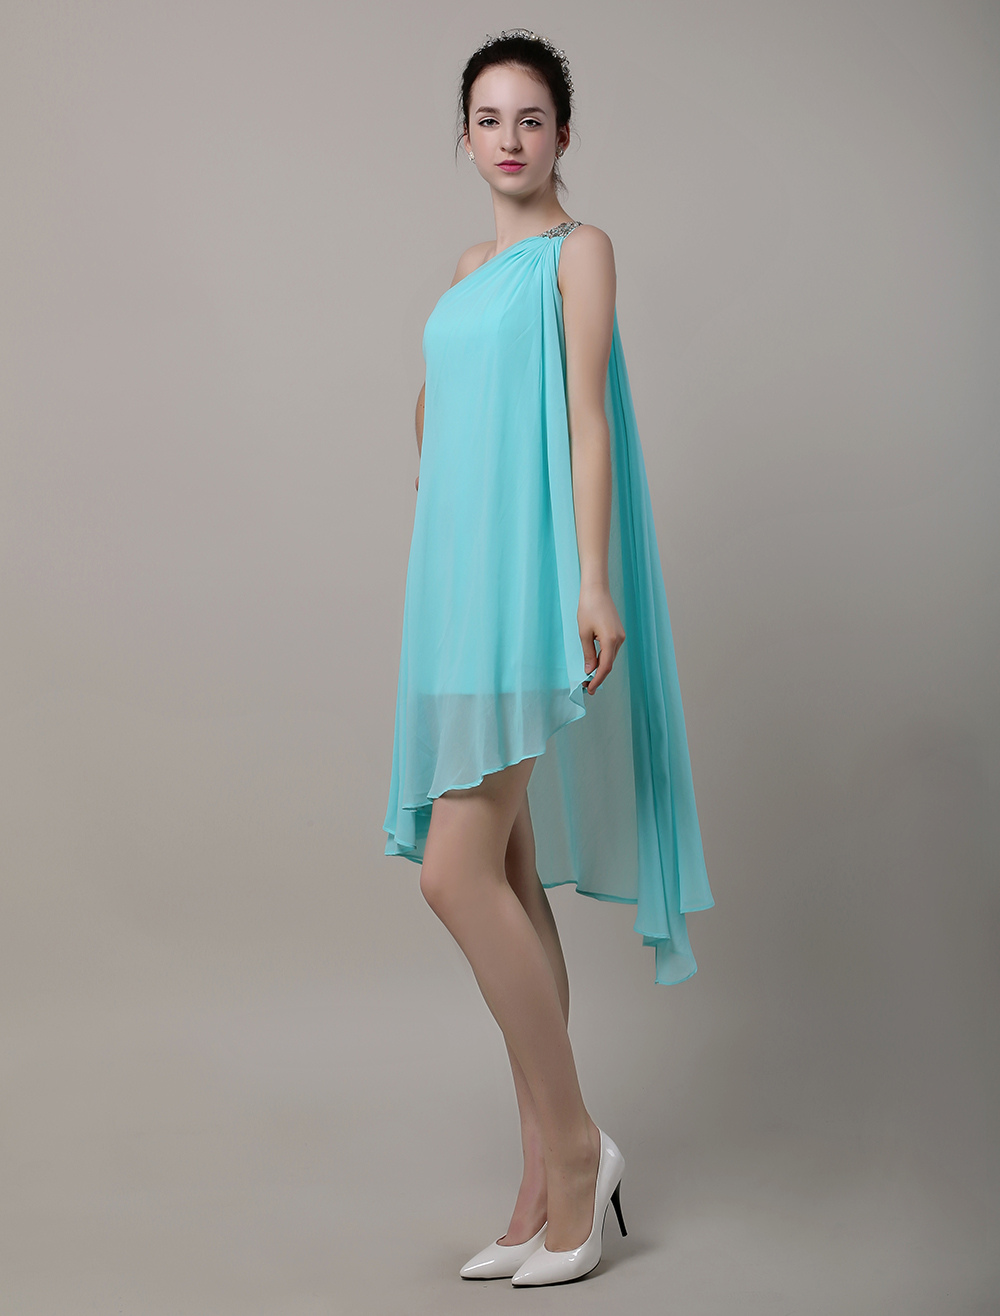 One Shoulder Beading Asymmetrical Chiffon Bridesmaid Dress